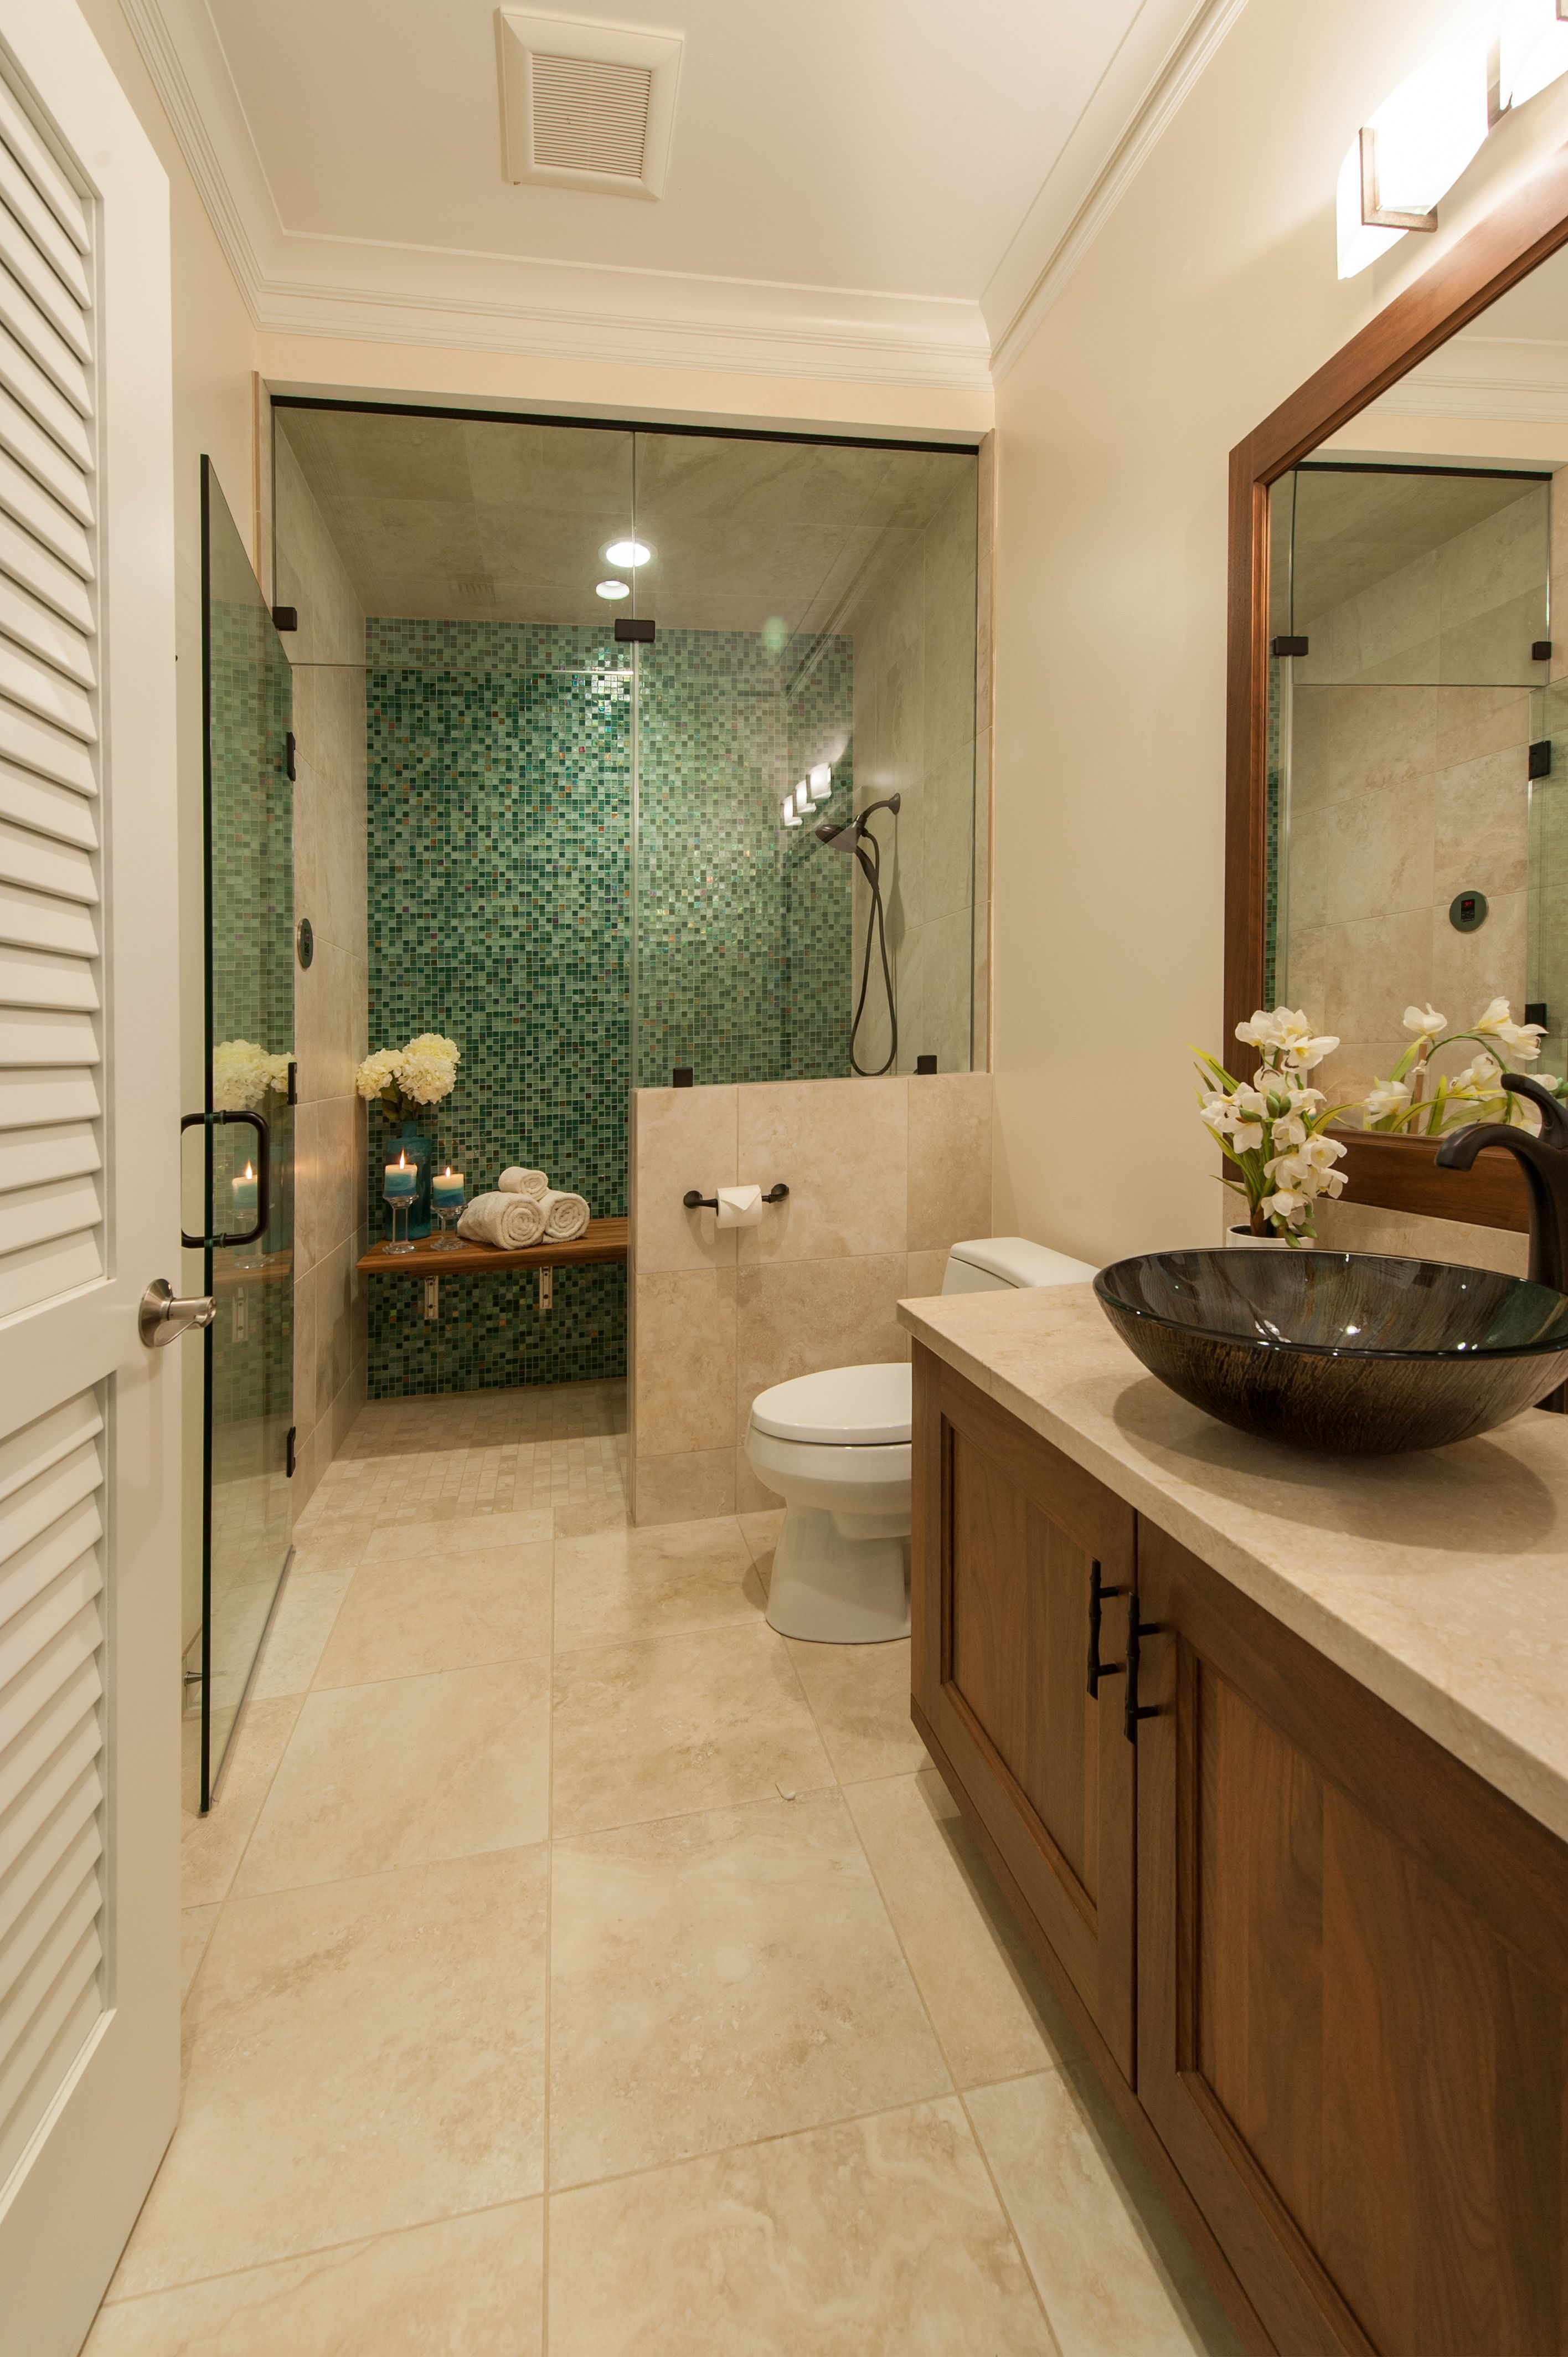 This multipurpose bathroom can be used as a regular guest shower or converted to a